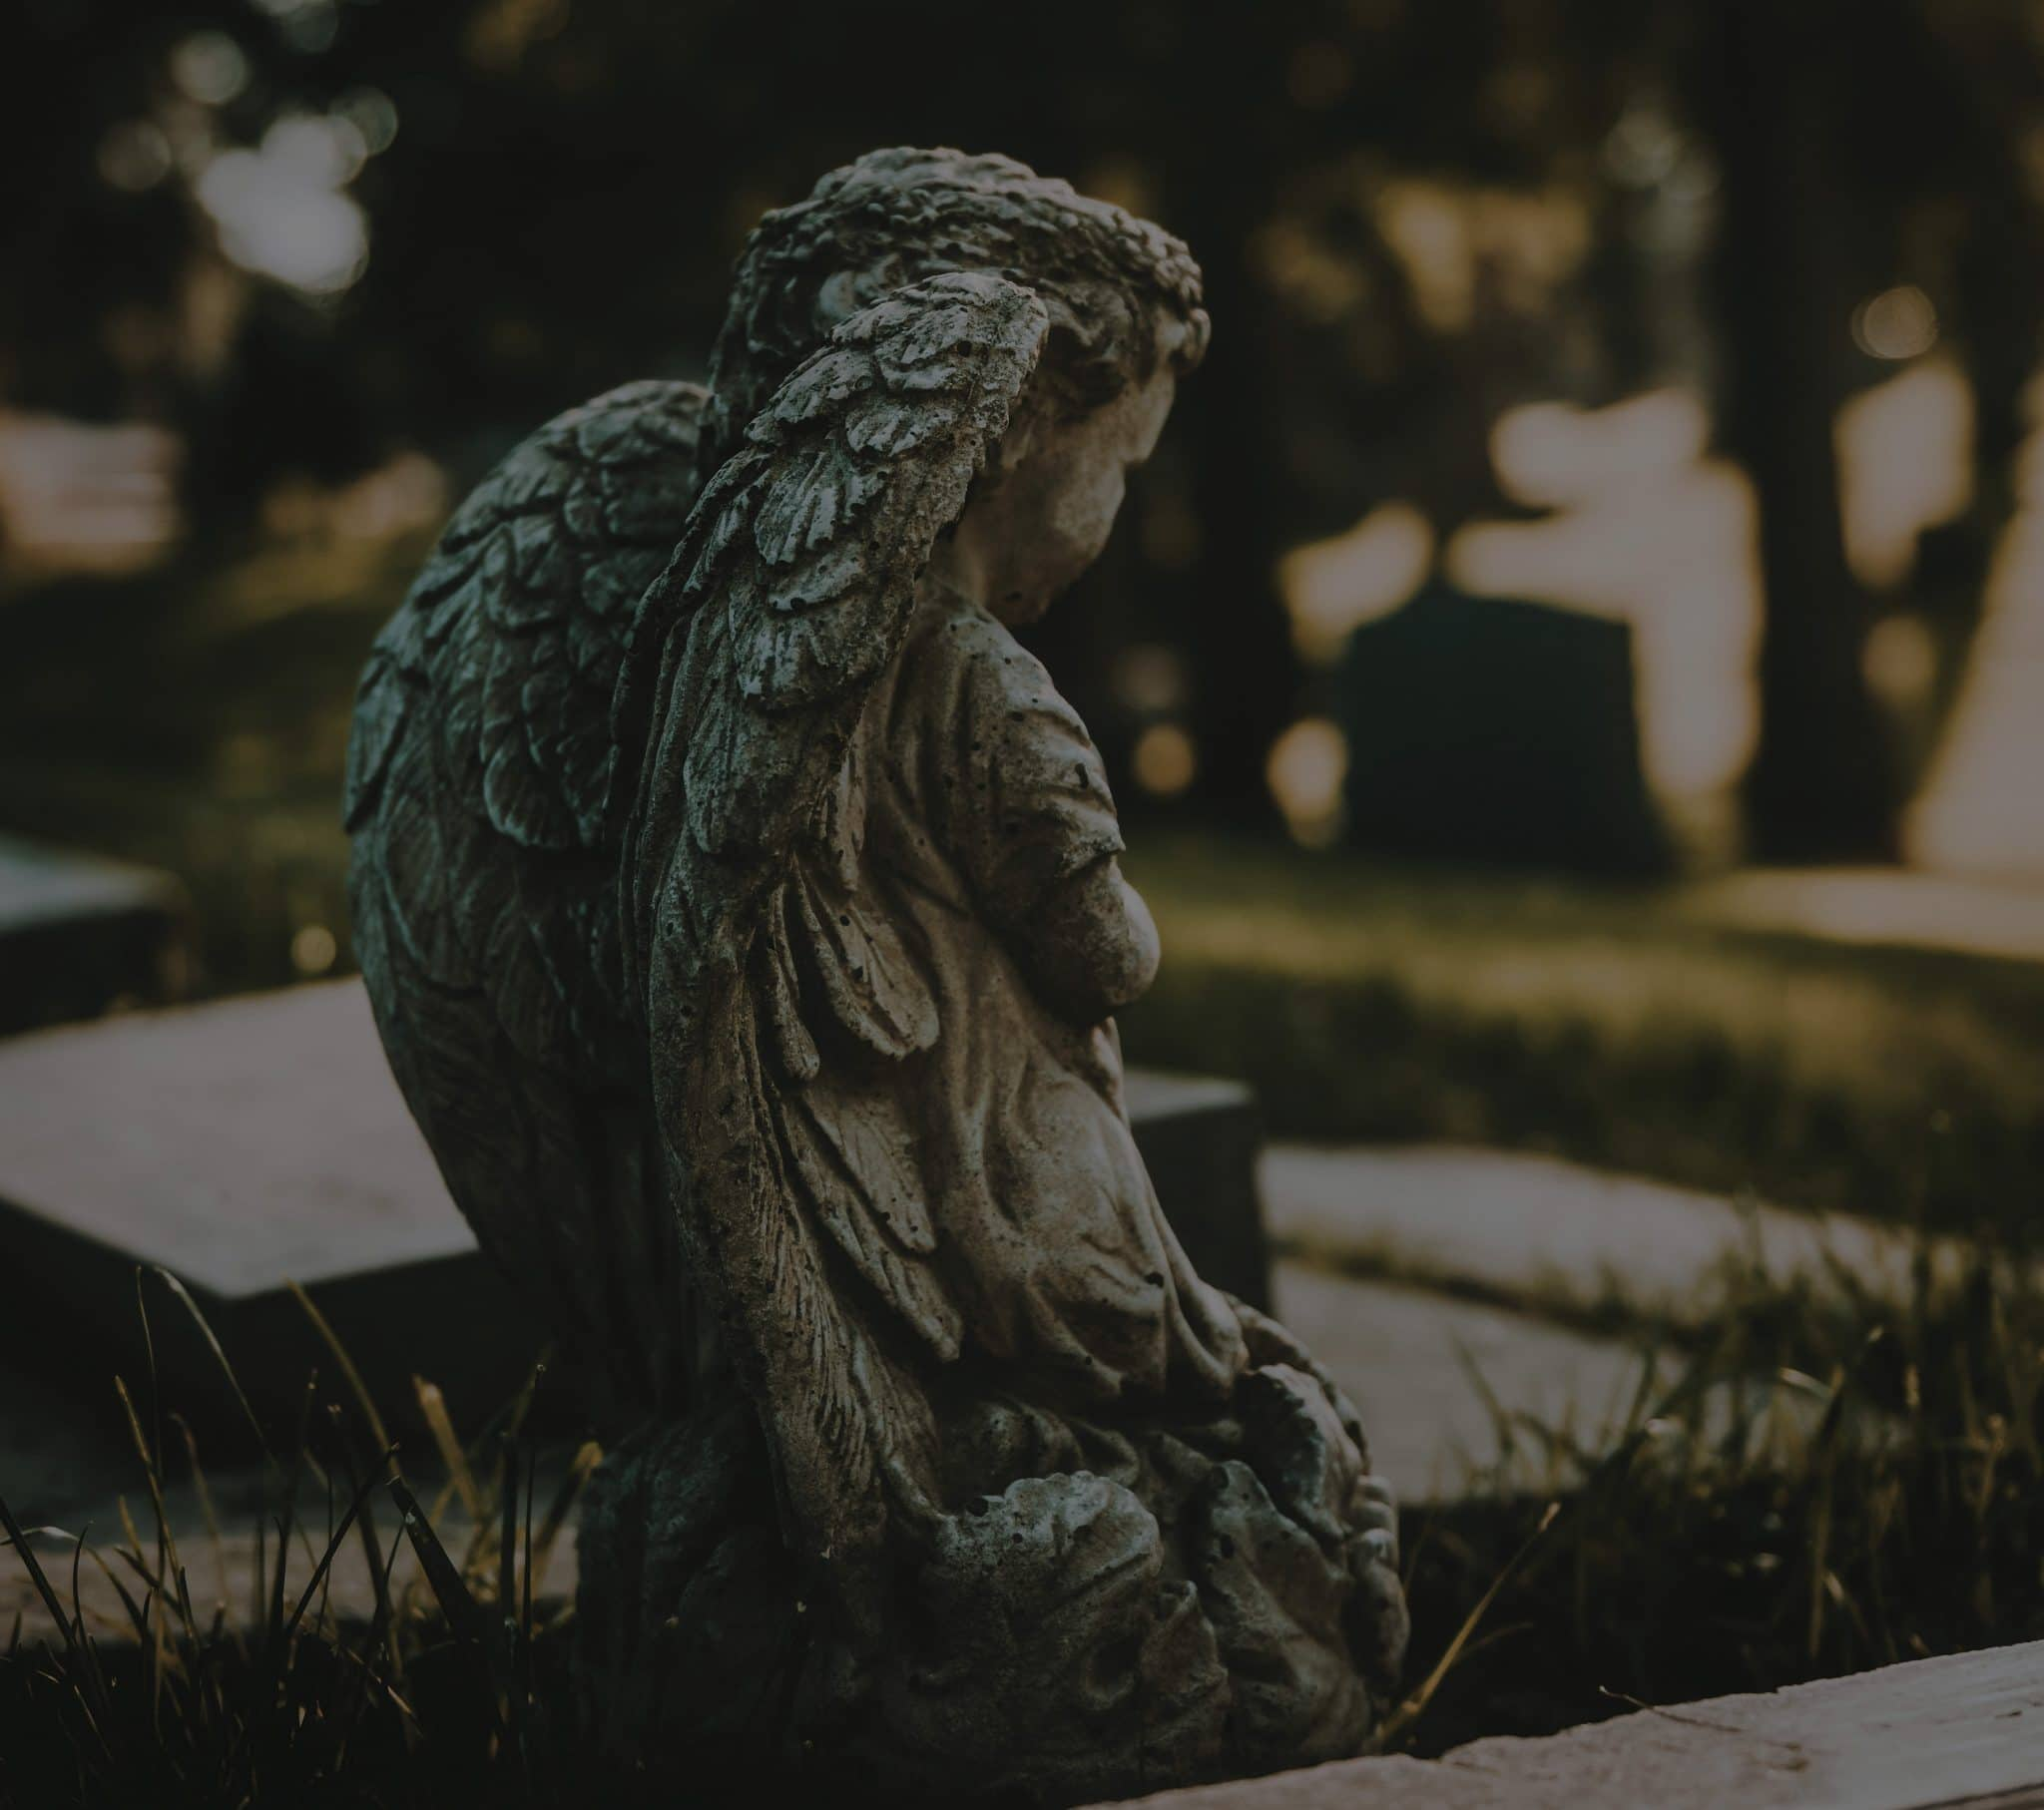 Angel statue in a cemetary